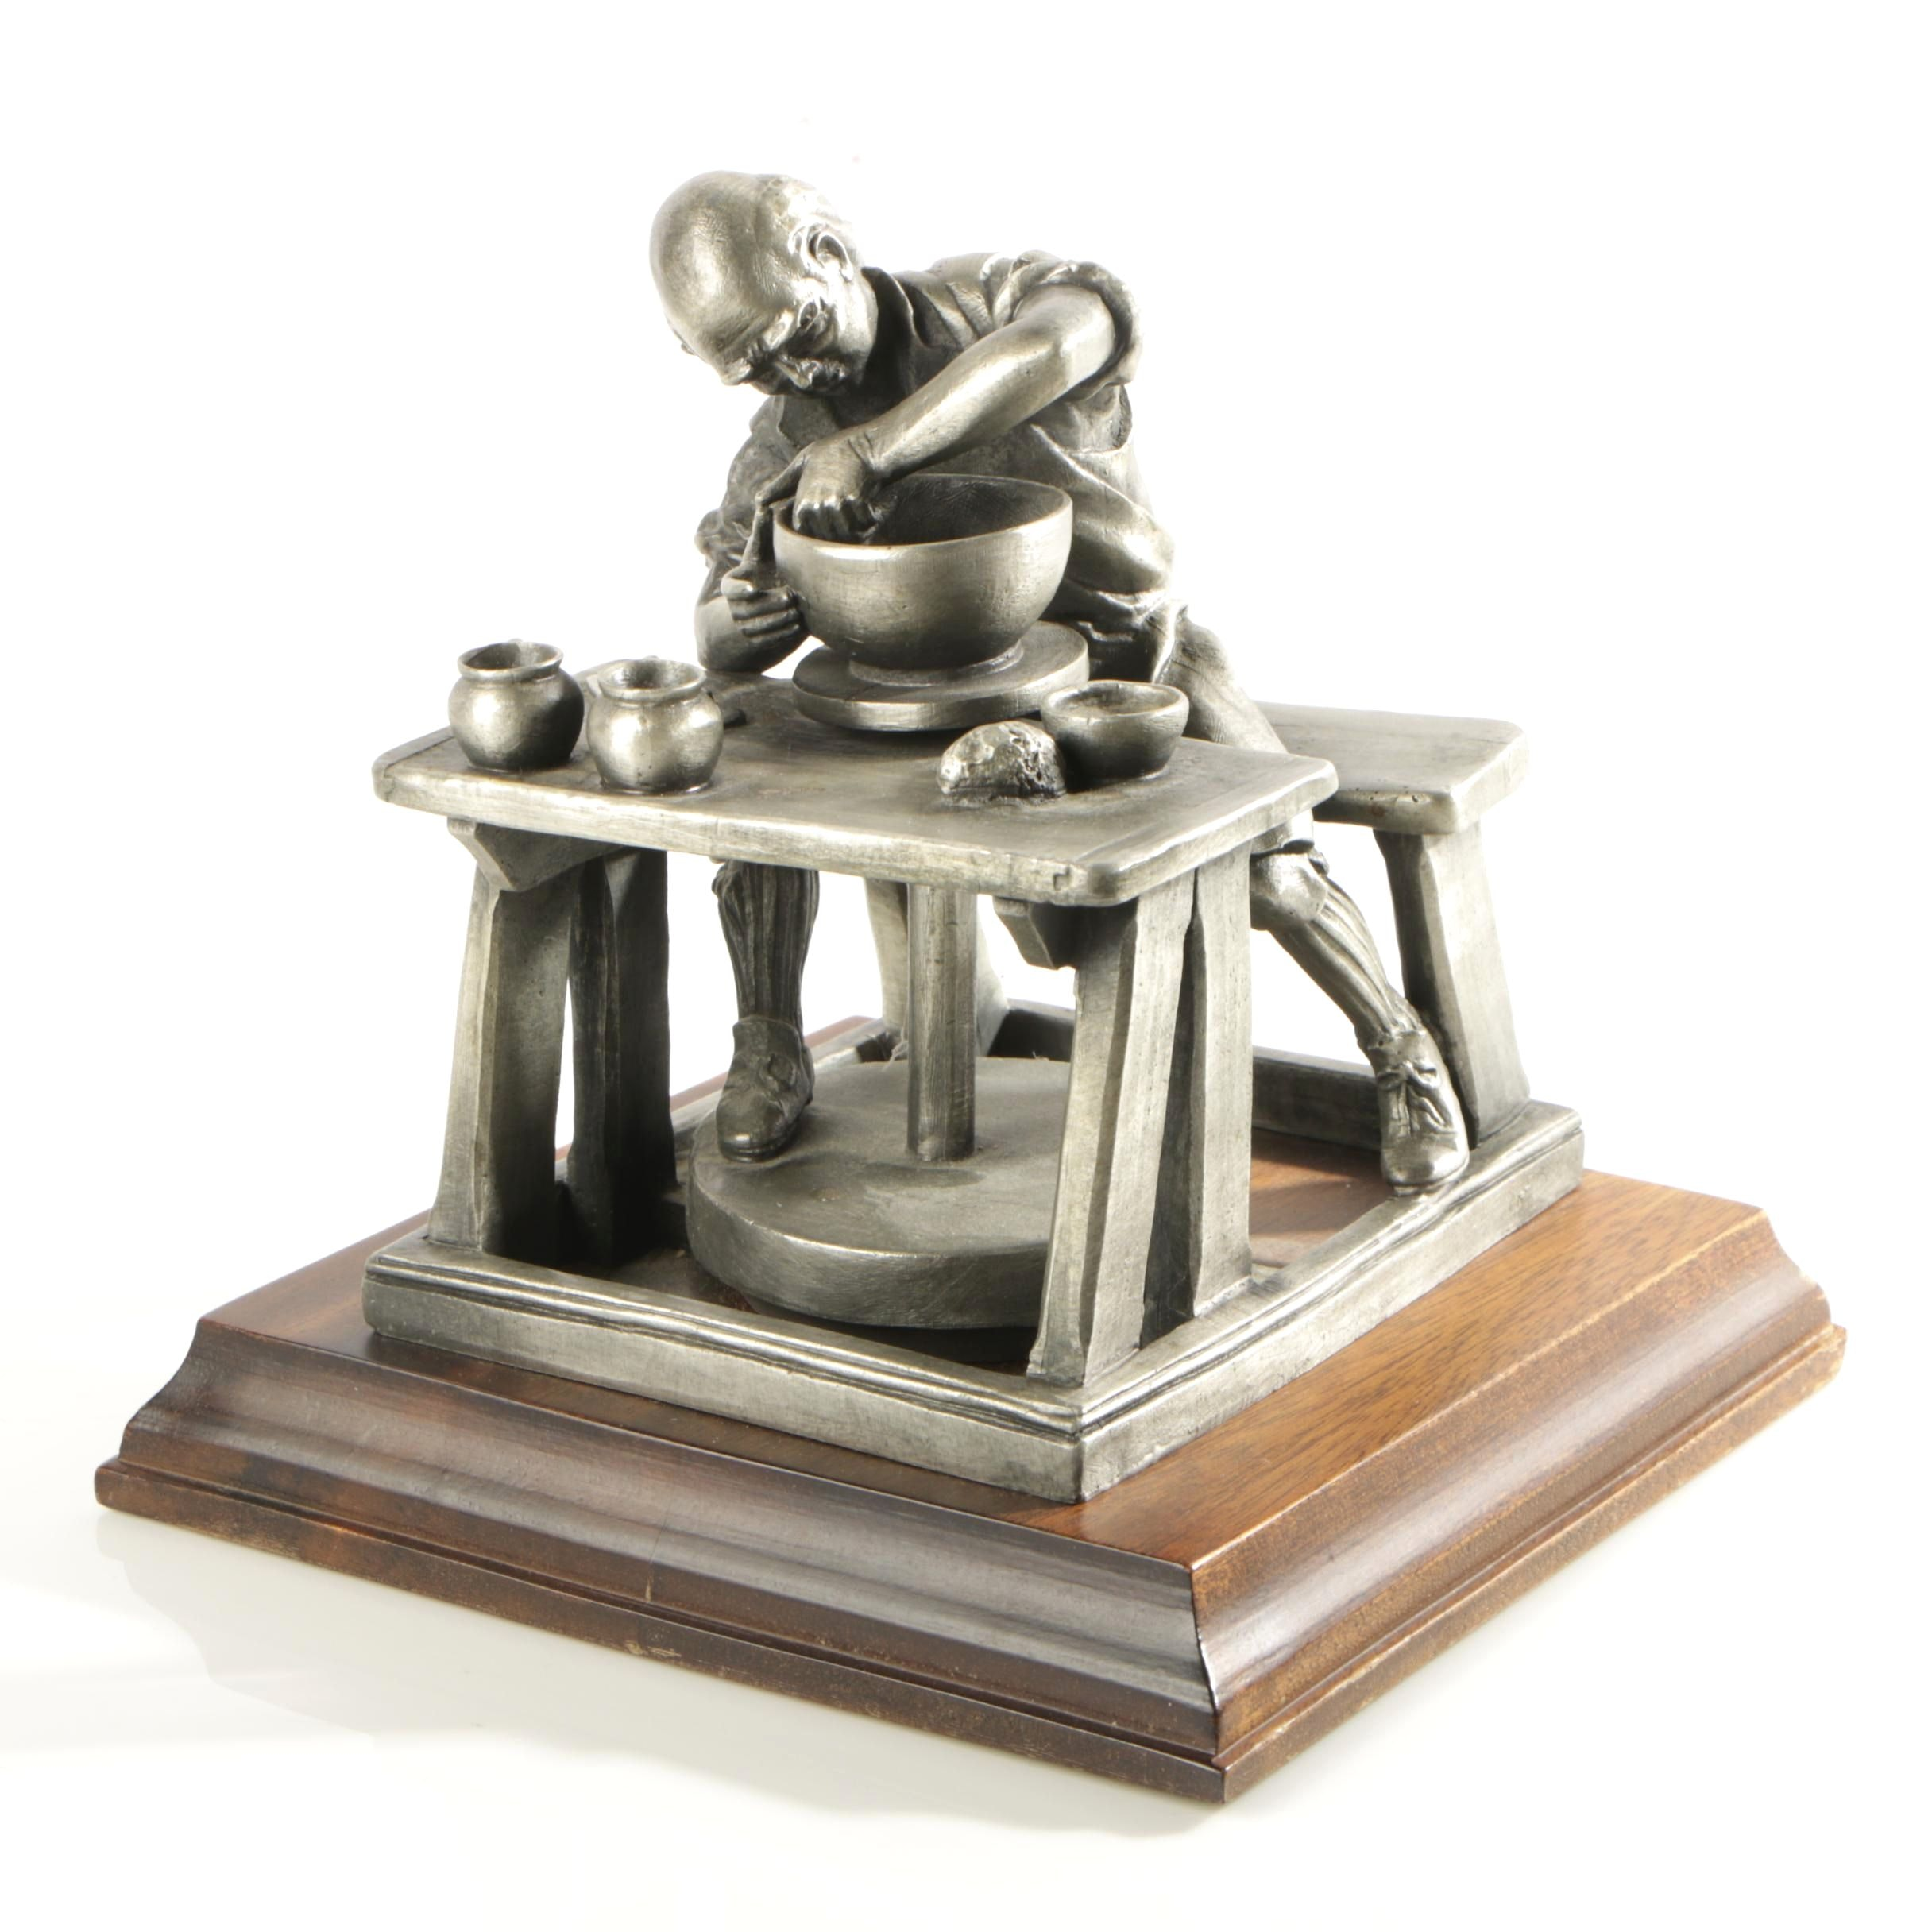 P. W. Baston Limited Edition Pewter Sculpture